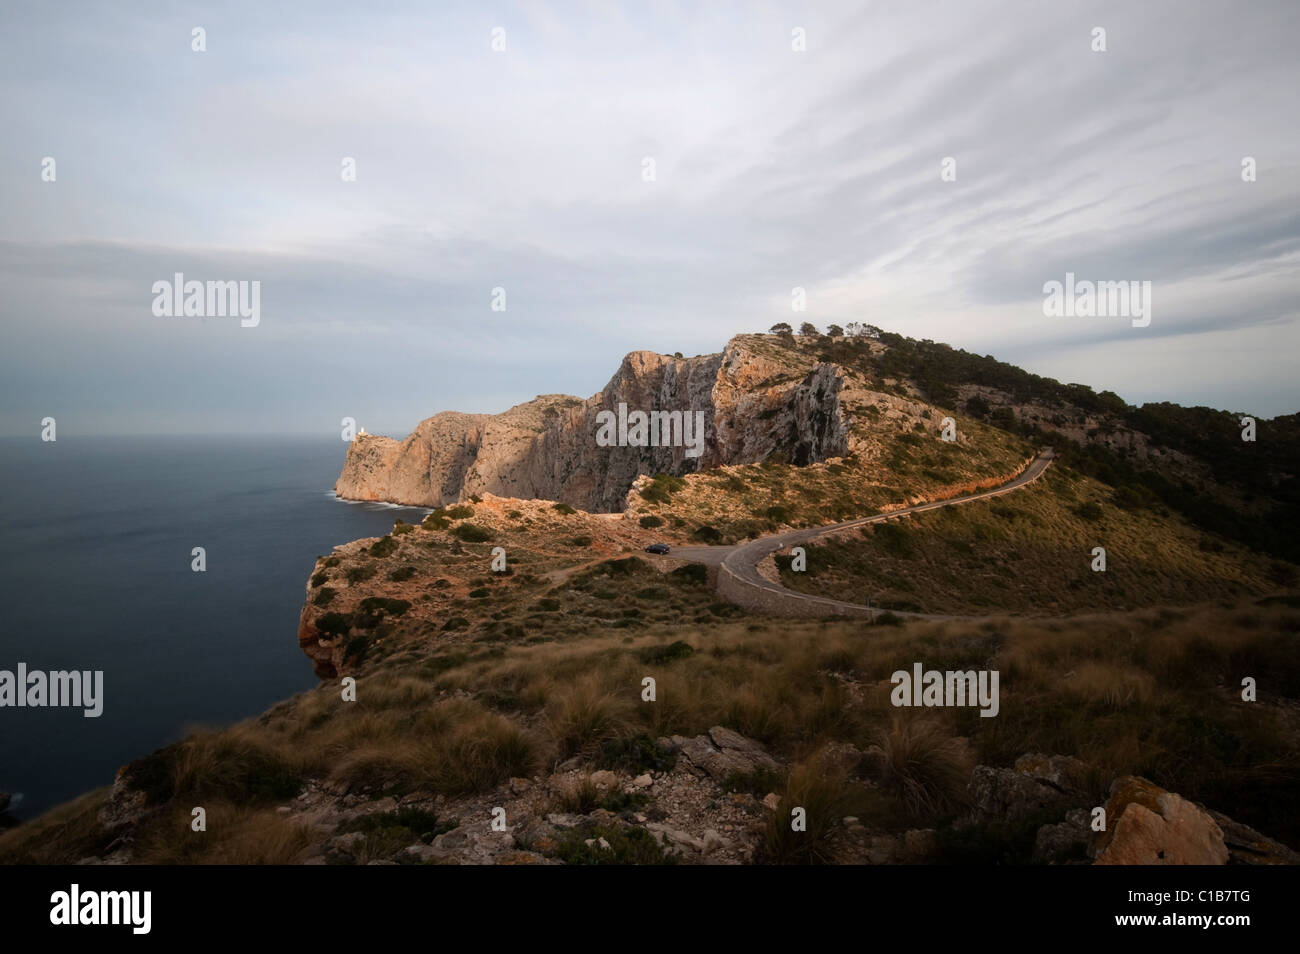 vview from punta tomas to cap de formentor with lighthouse, Mallorca, Spain - Stock Image